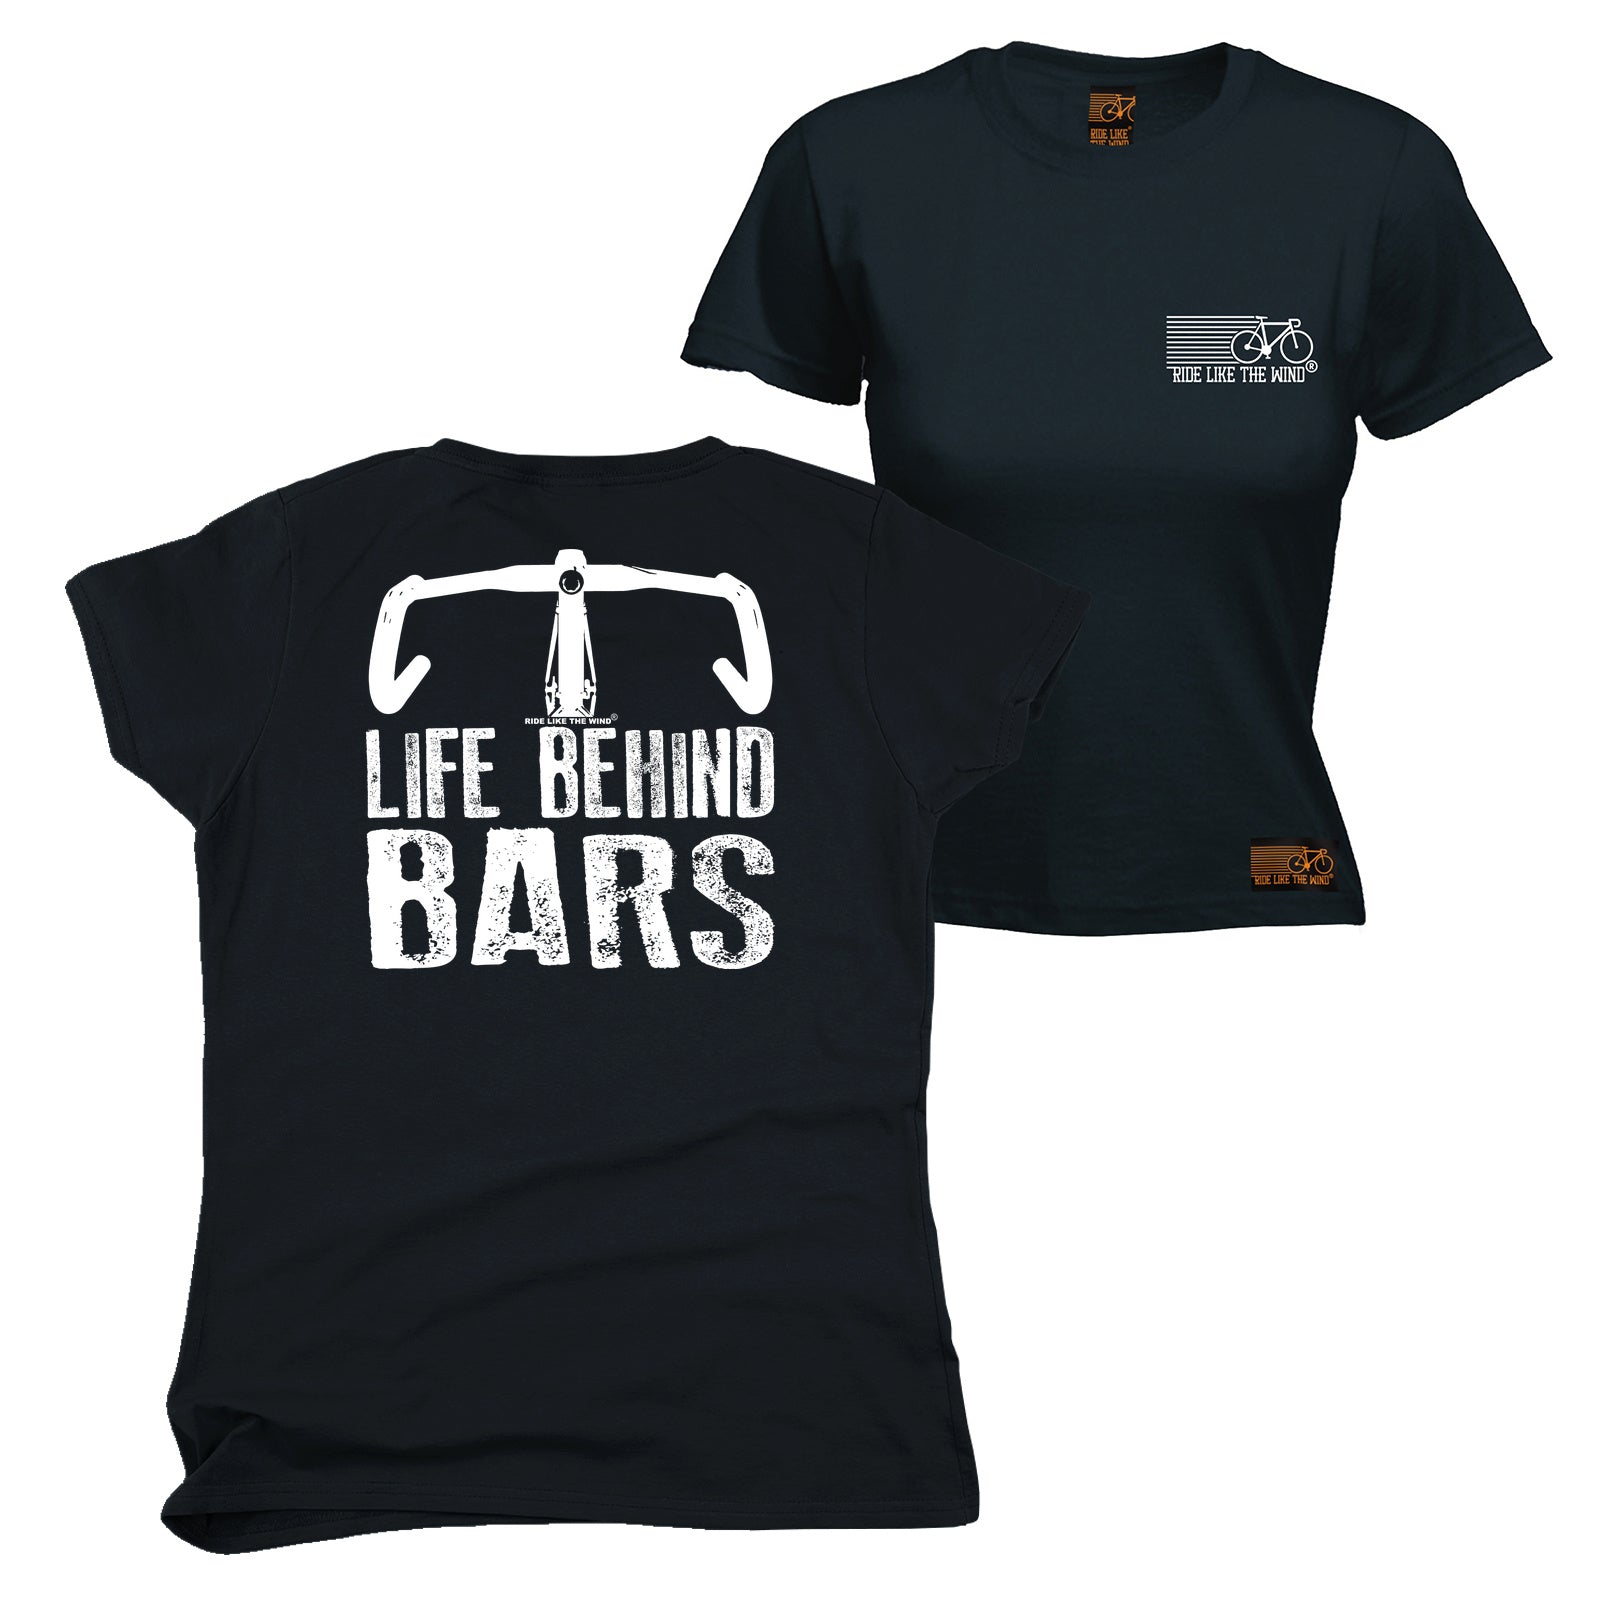 257a087cb FB Ride Like The Wind Cycling Tee - Bike Life Behind Bars - Womens Fitted  Cotton T-Shirt Top T Shirt